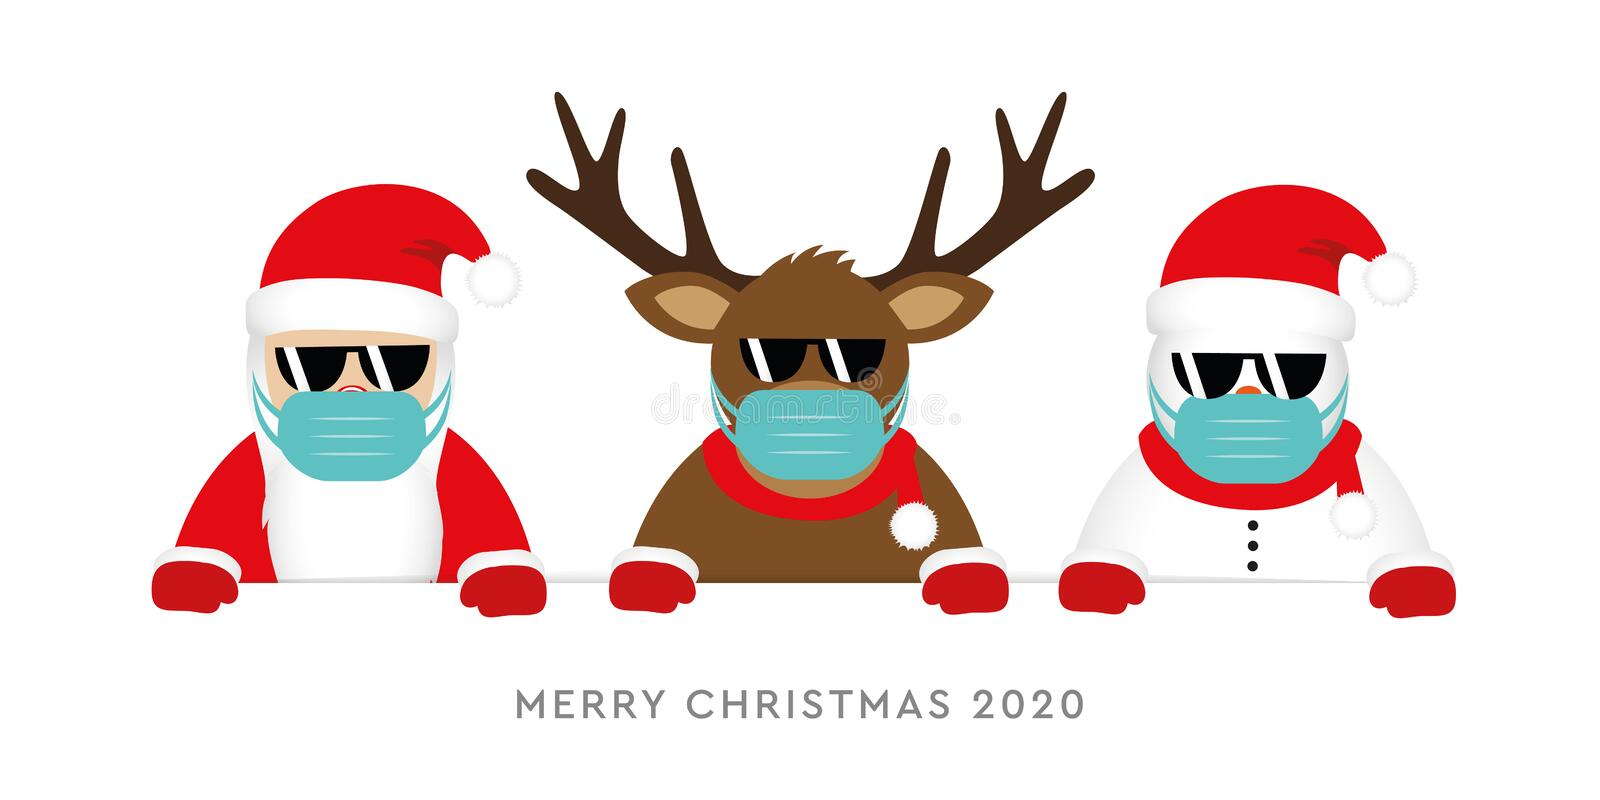 Christmas Virus Cartoon Stock Illustrations 1 944 Christmas Virus Cartoon Stock Illustrations Vectors Clipart Dreamstime